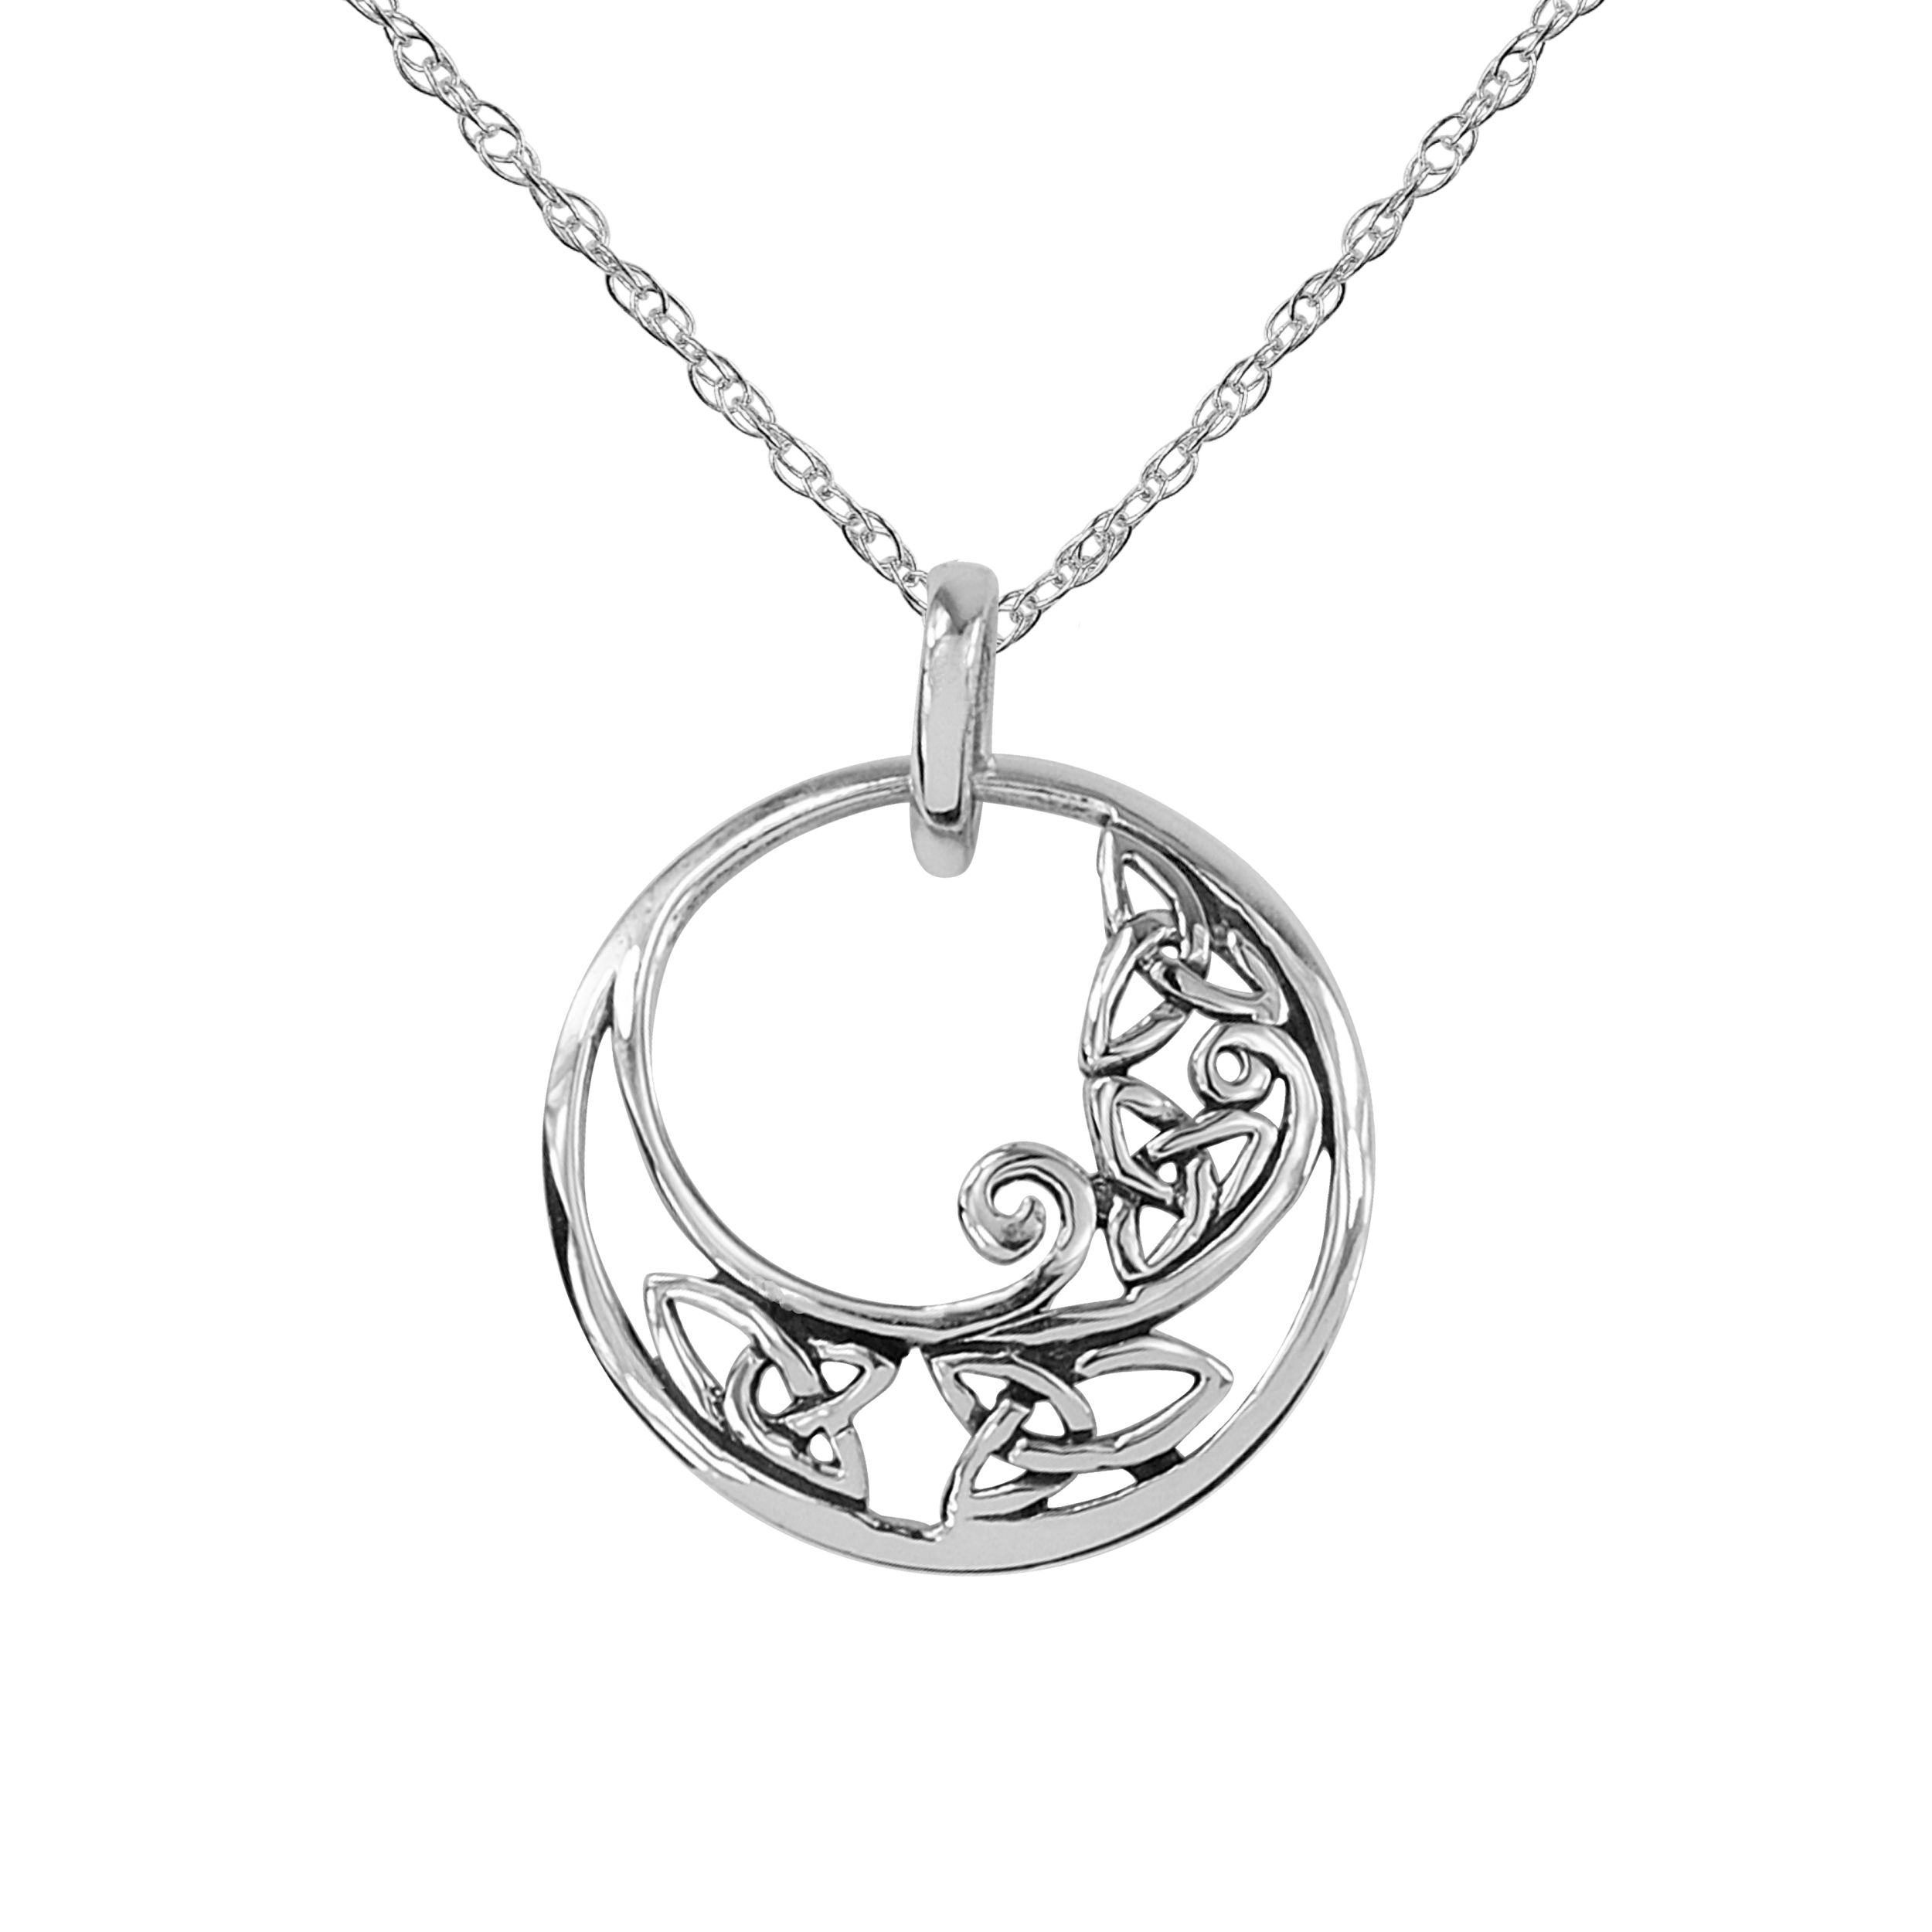 flower jewelry cotton jnt pewter ebay itm silver celtic pendant necklace charm design